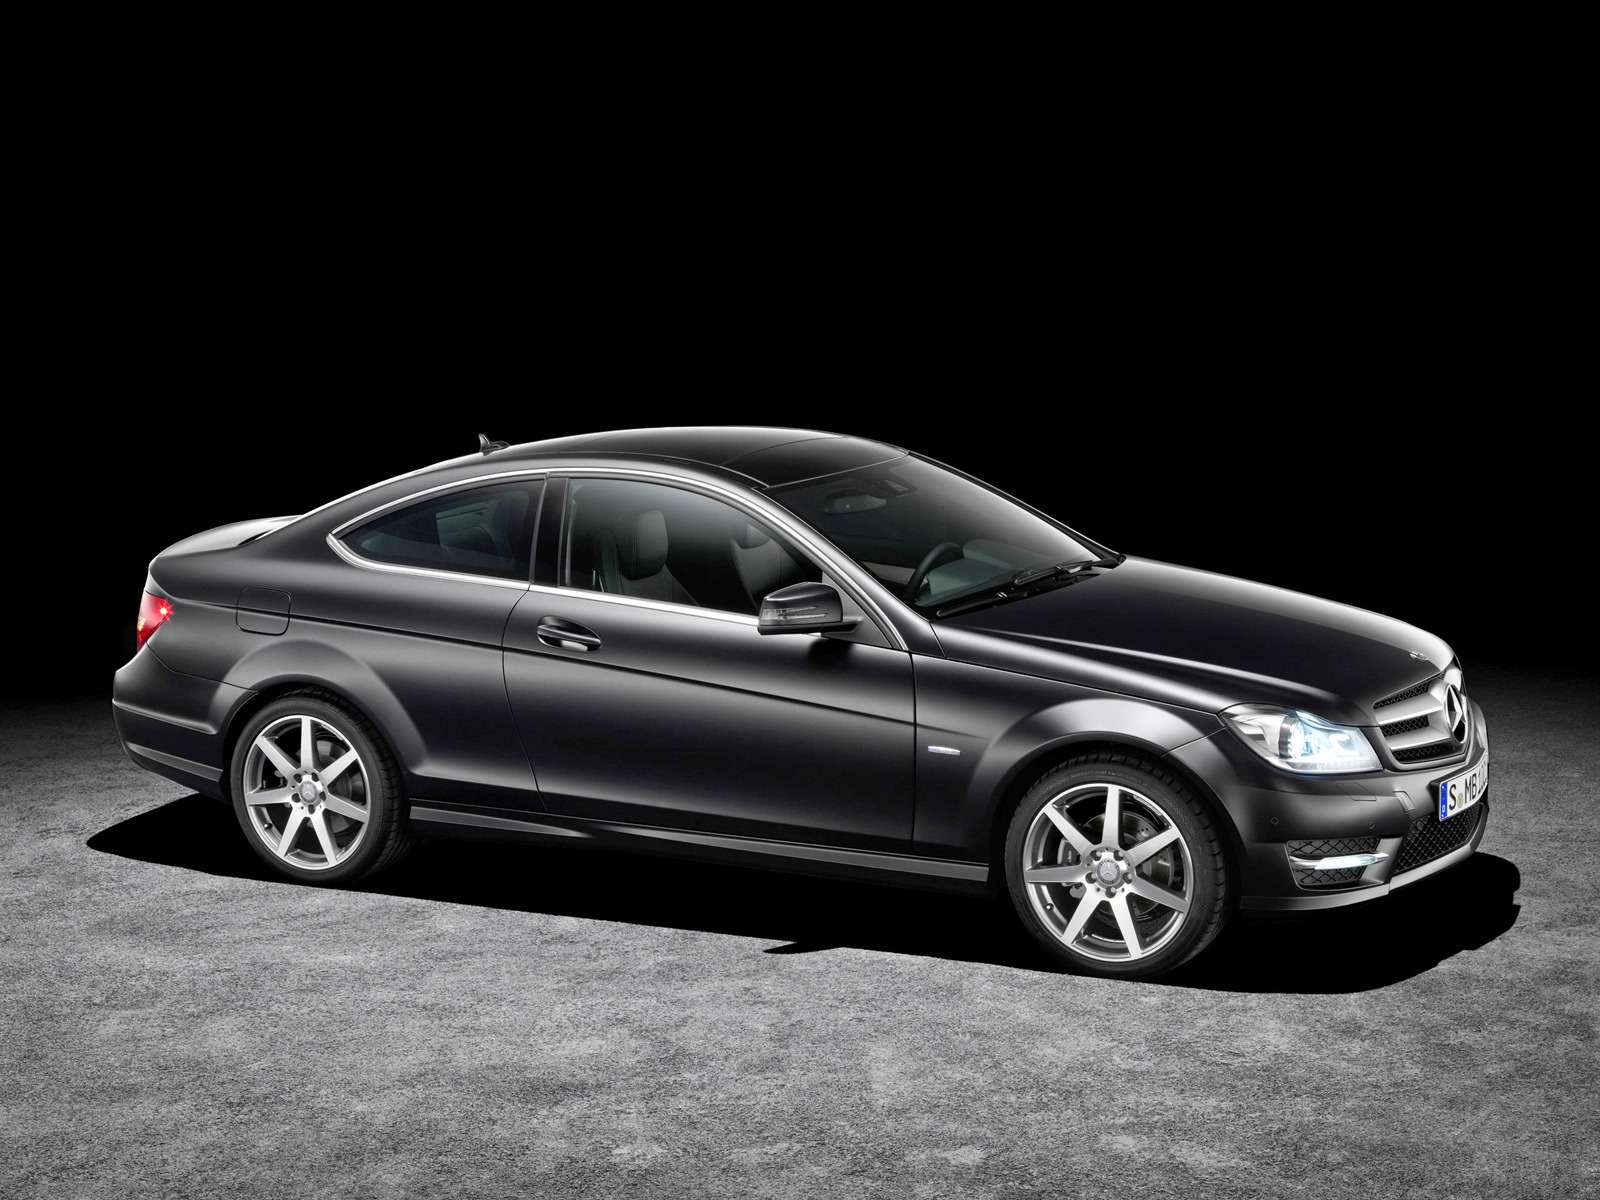 Mercedes-Benz C 300 Coupe: купе-Ц — фото 581474